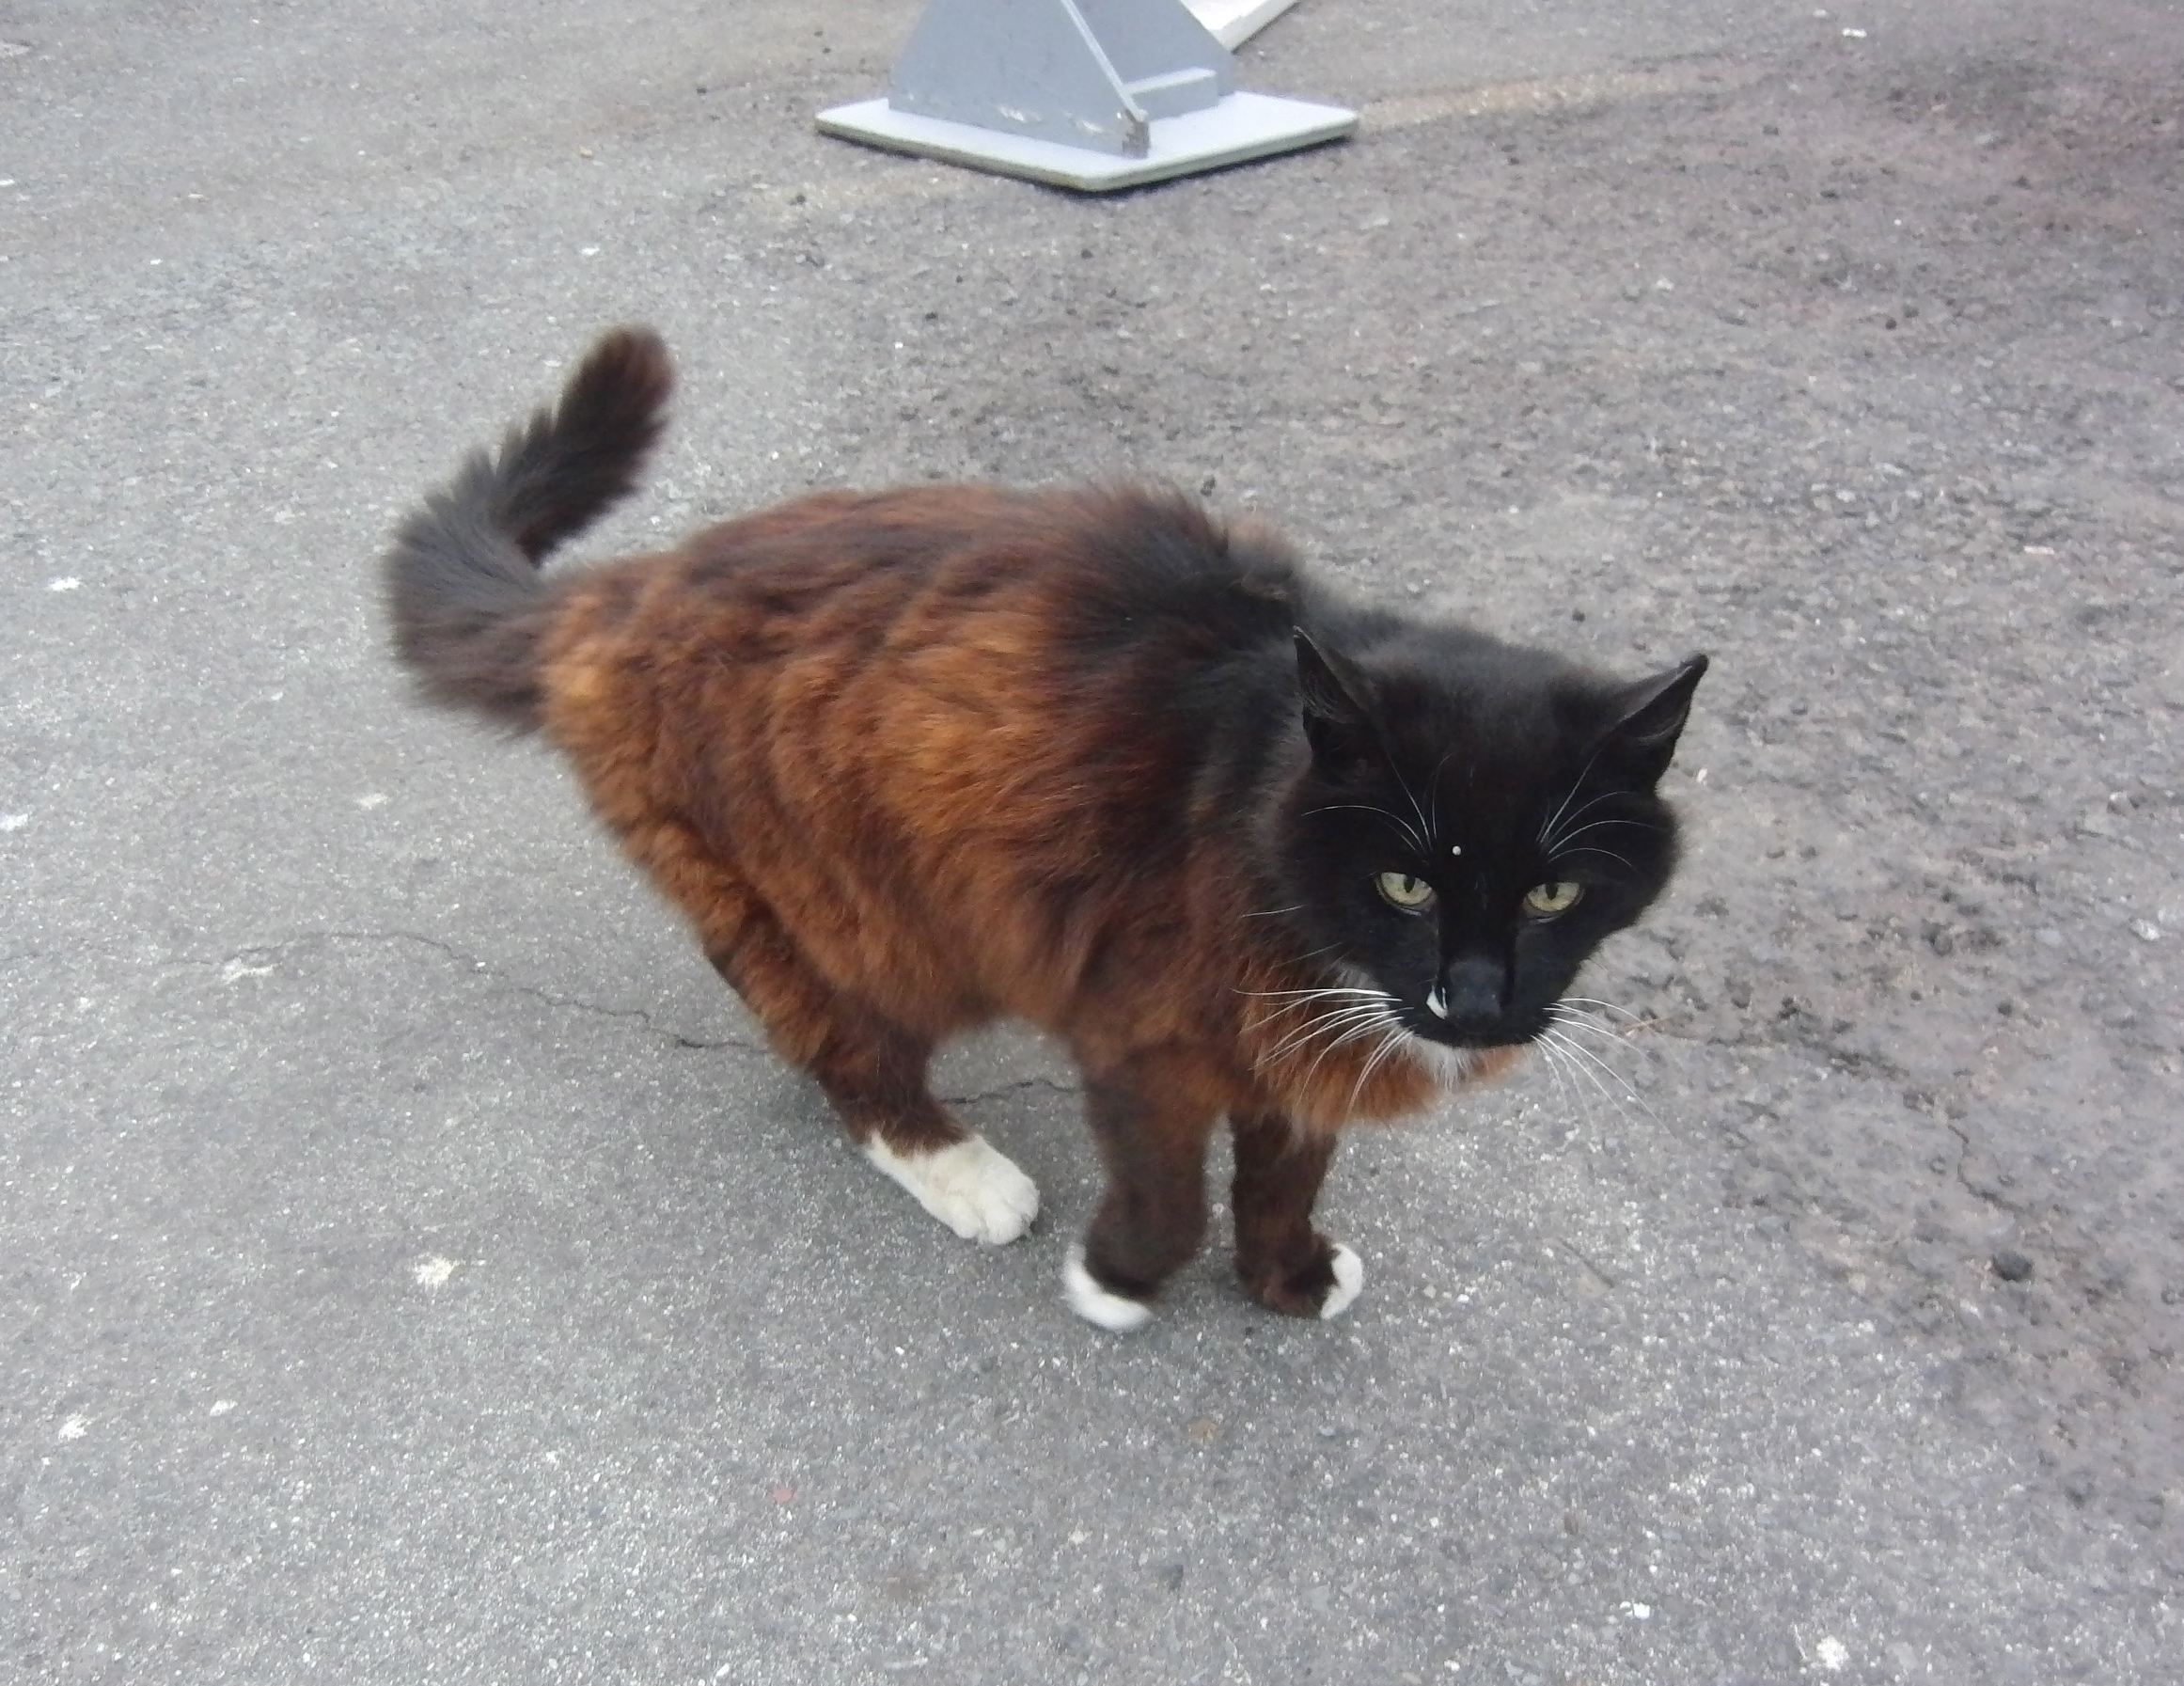 Brown and Black Cat With Black Head and White Socks